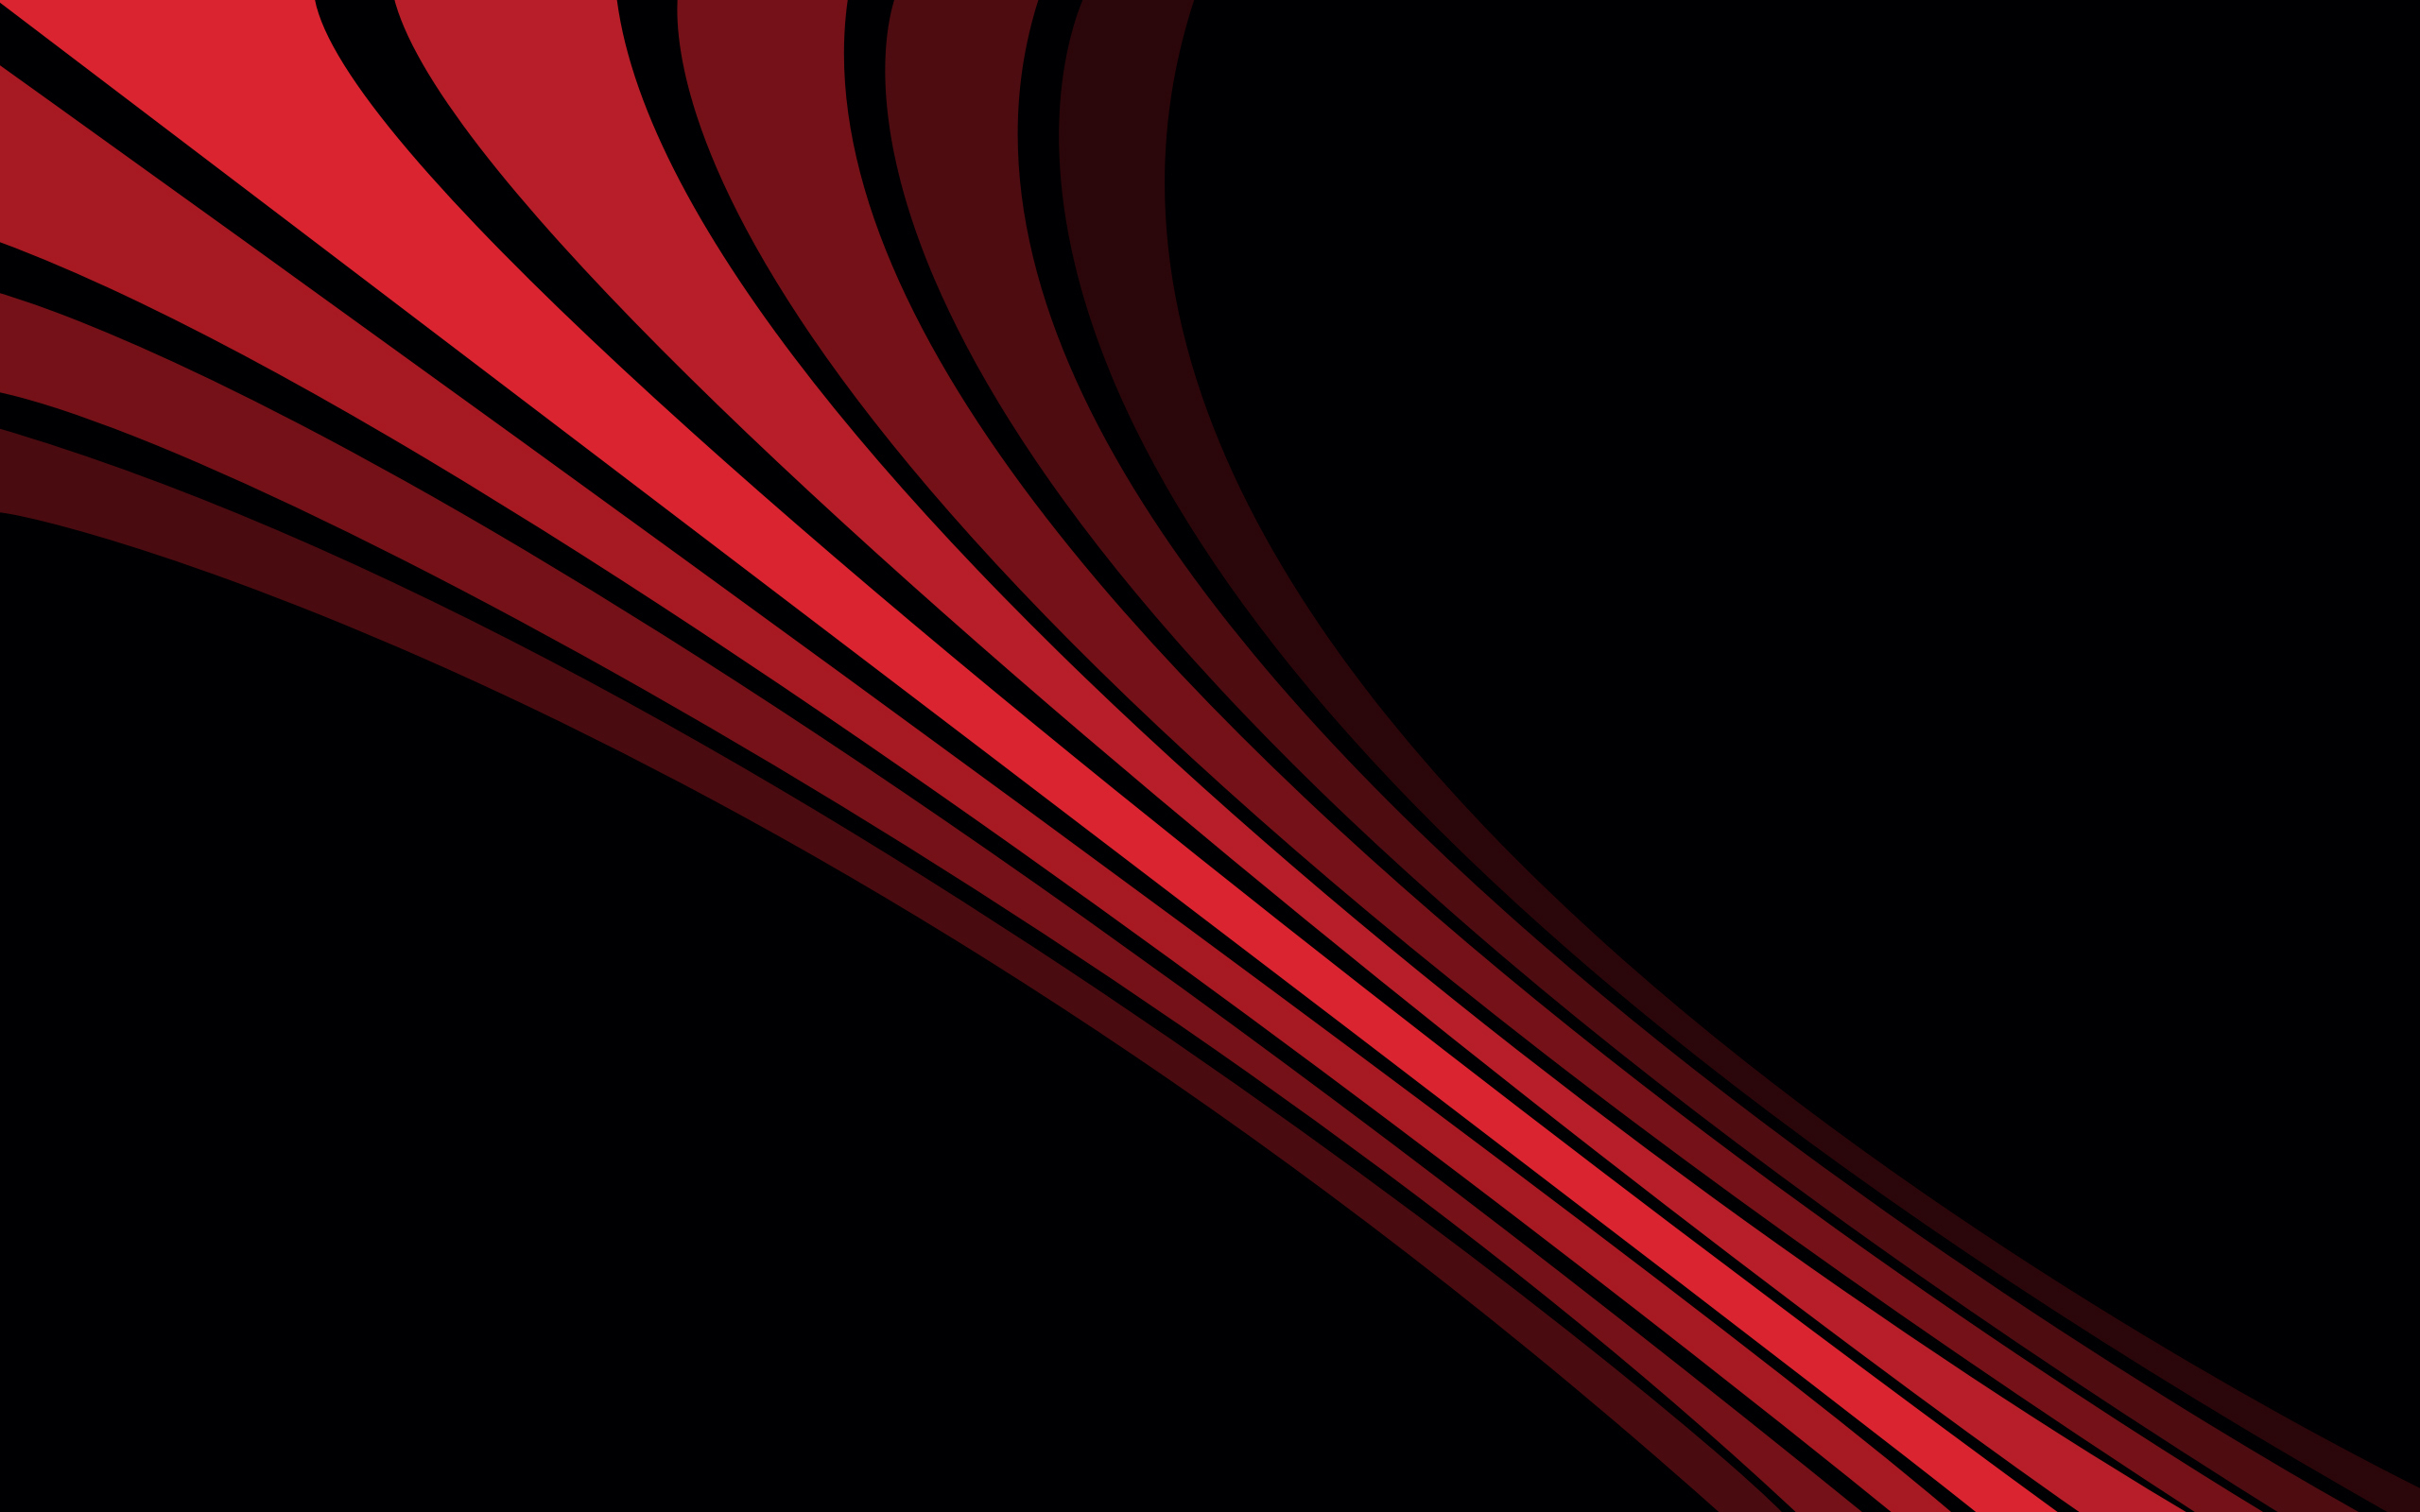 Hd wallpaper red and black - Cool Red And Black Desktop Background 1 Free Hd Wallpaper